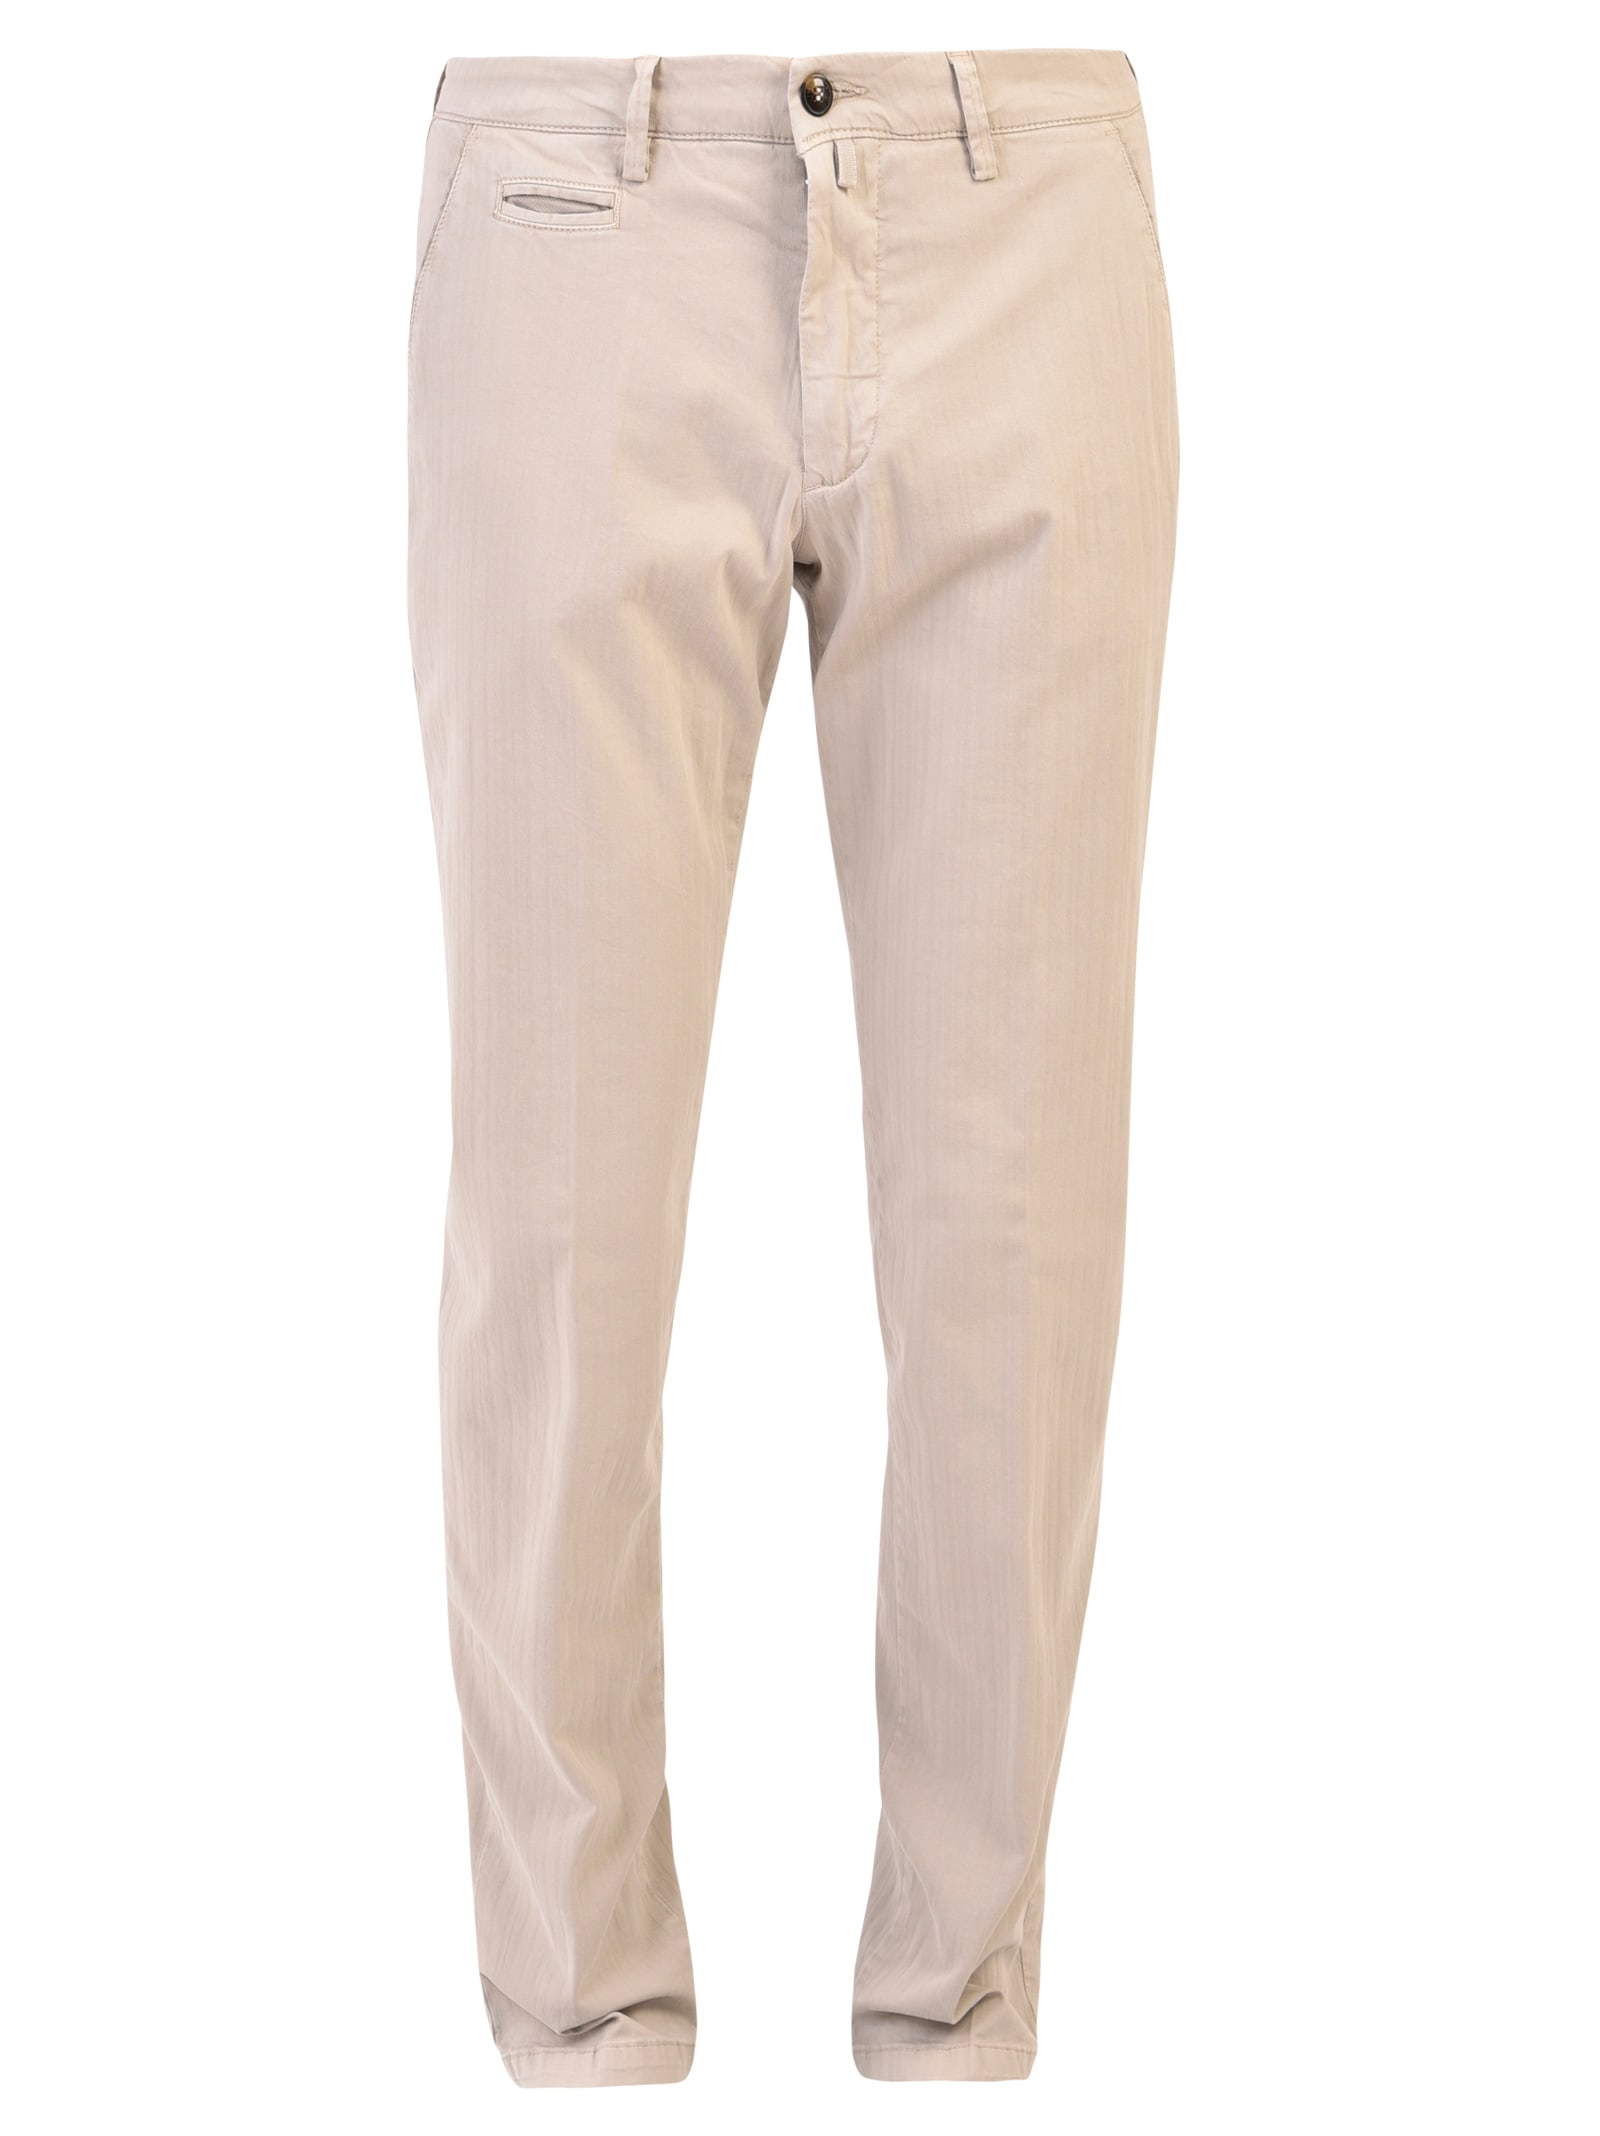 1949 Grey Trousers